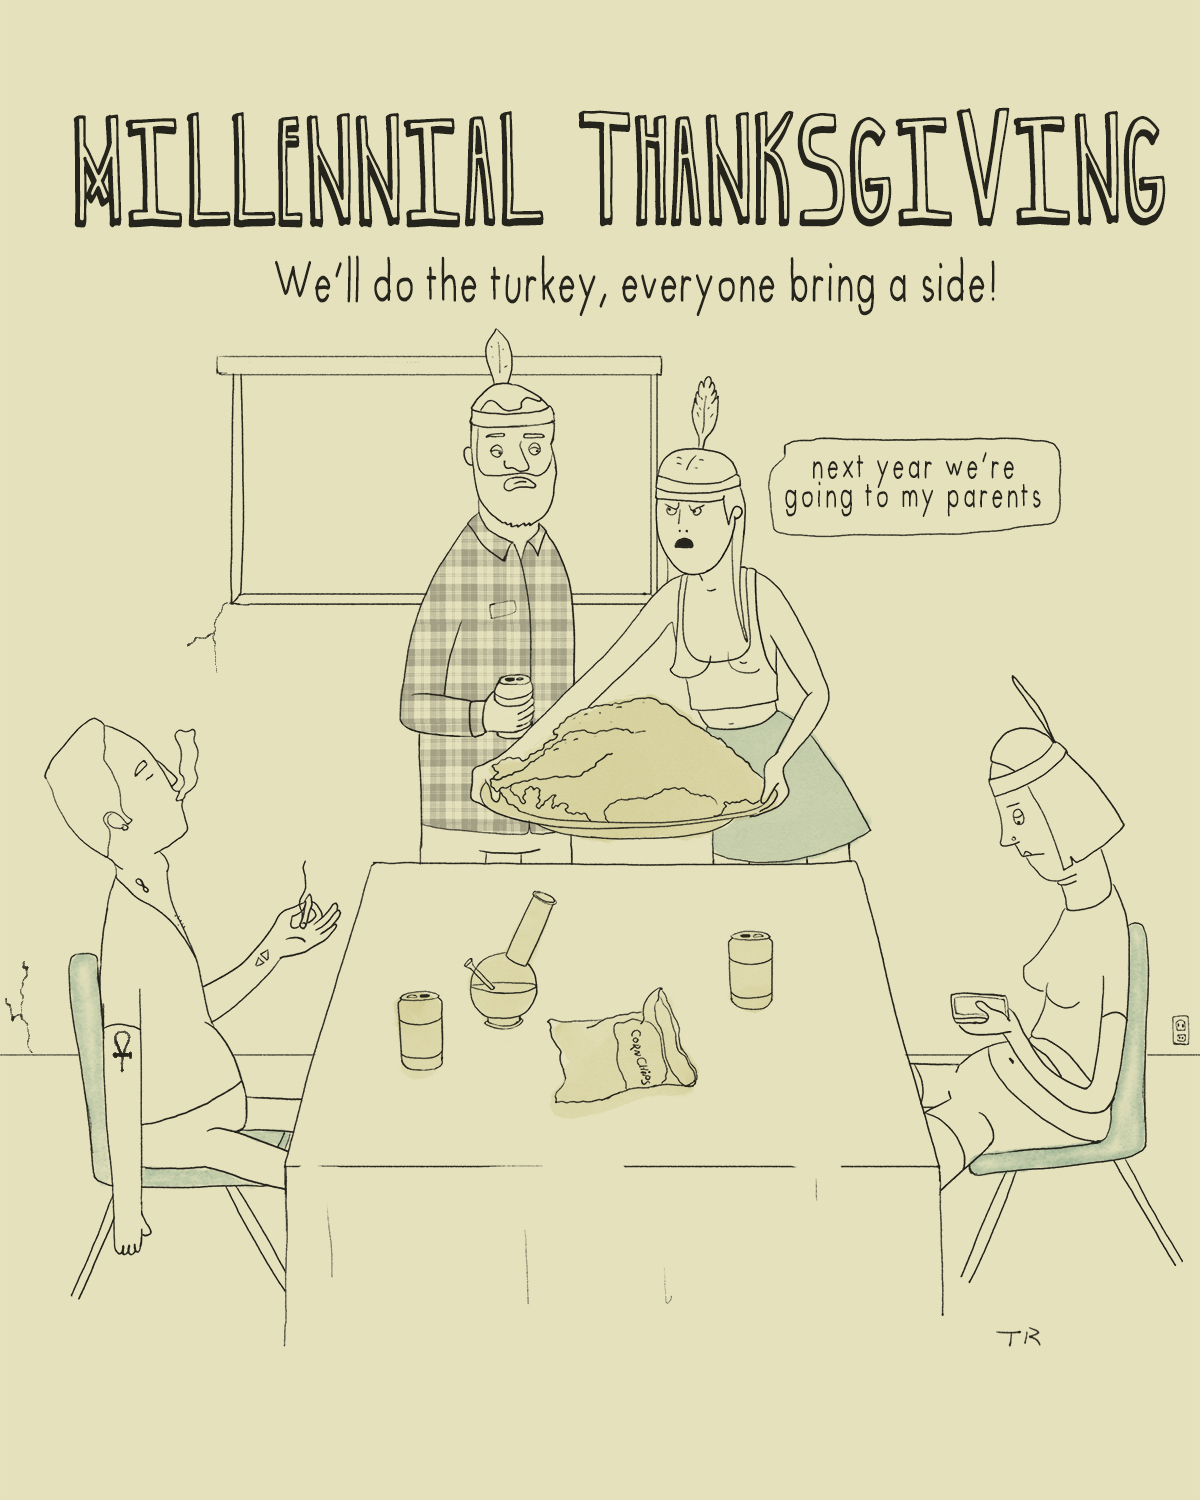 Millennial Thanksgiving